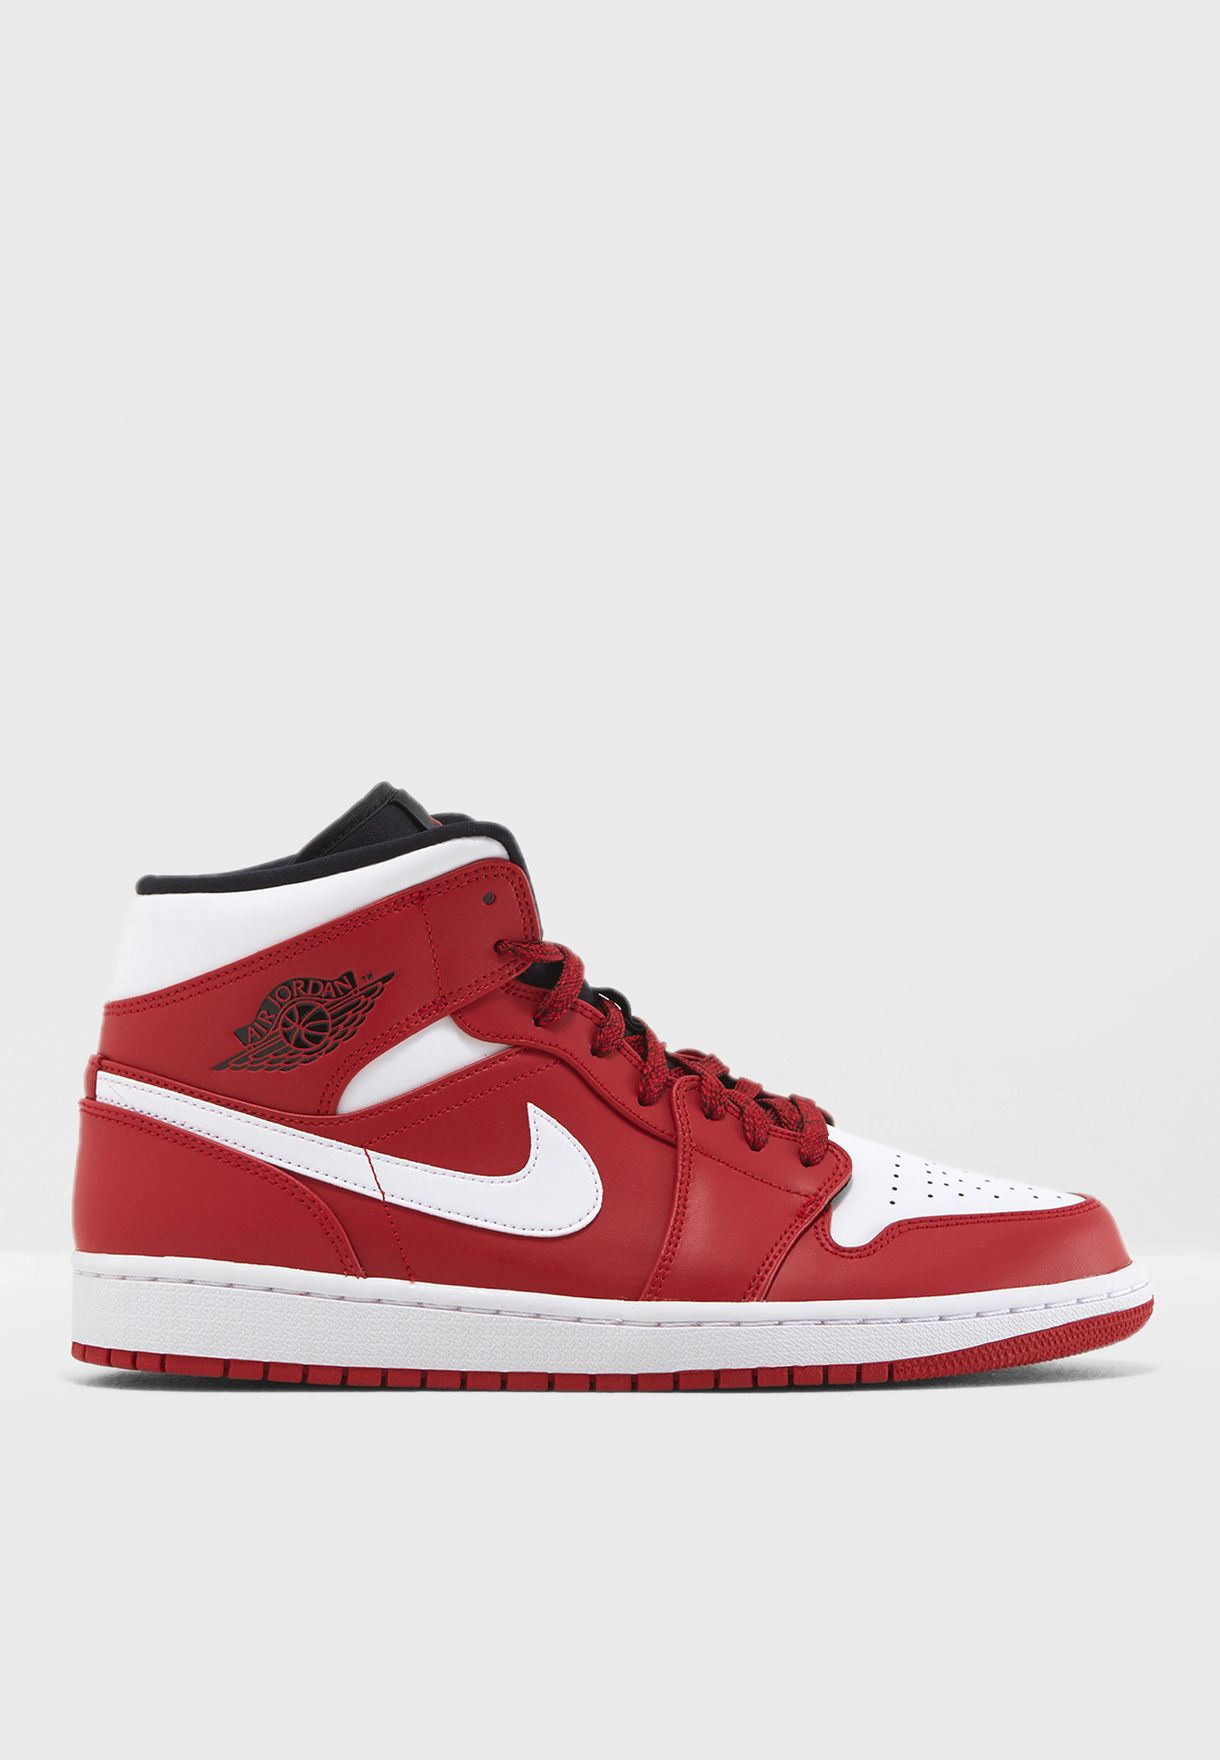 1a0daca640ca22 Shop Nike red Air Jordan 1 Mid 554724-605 for Men in Kuwait ...